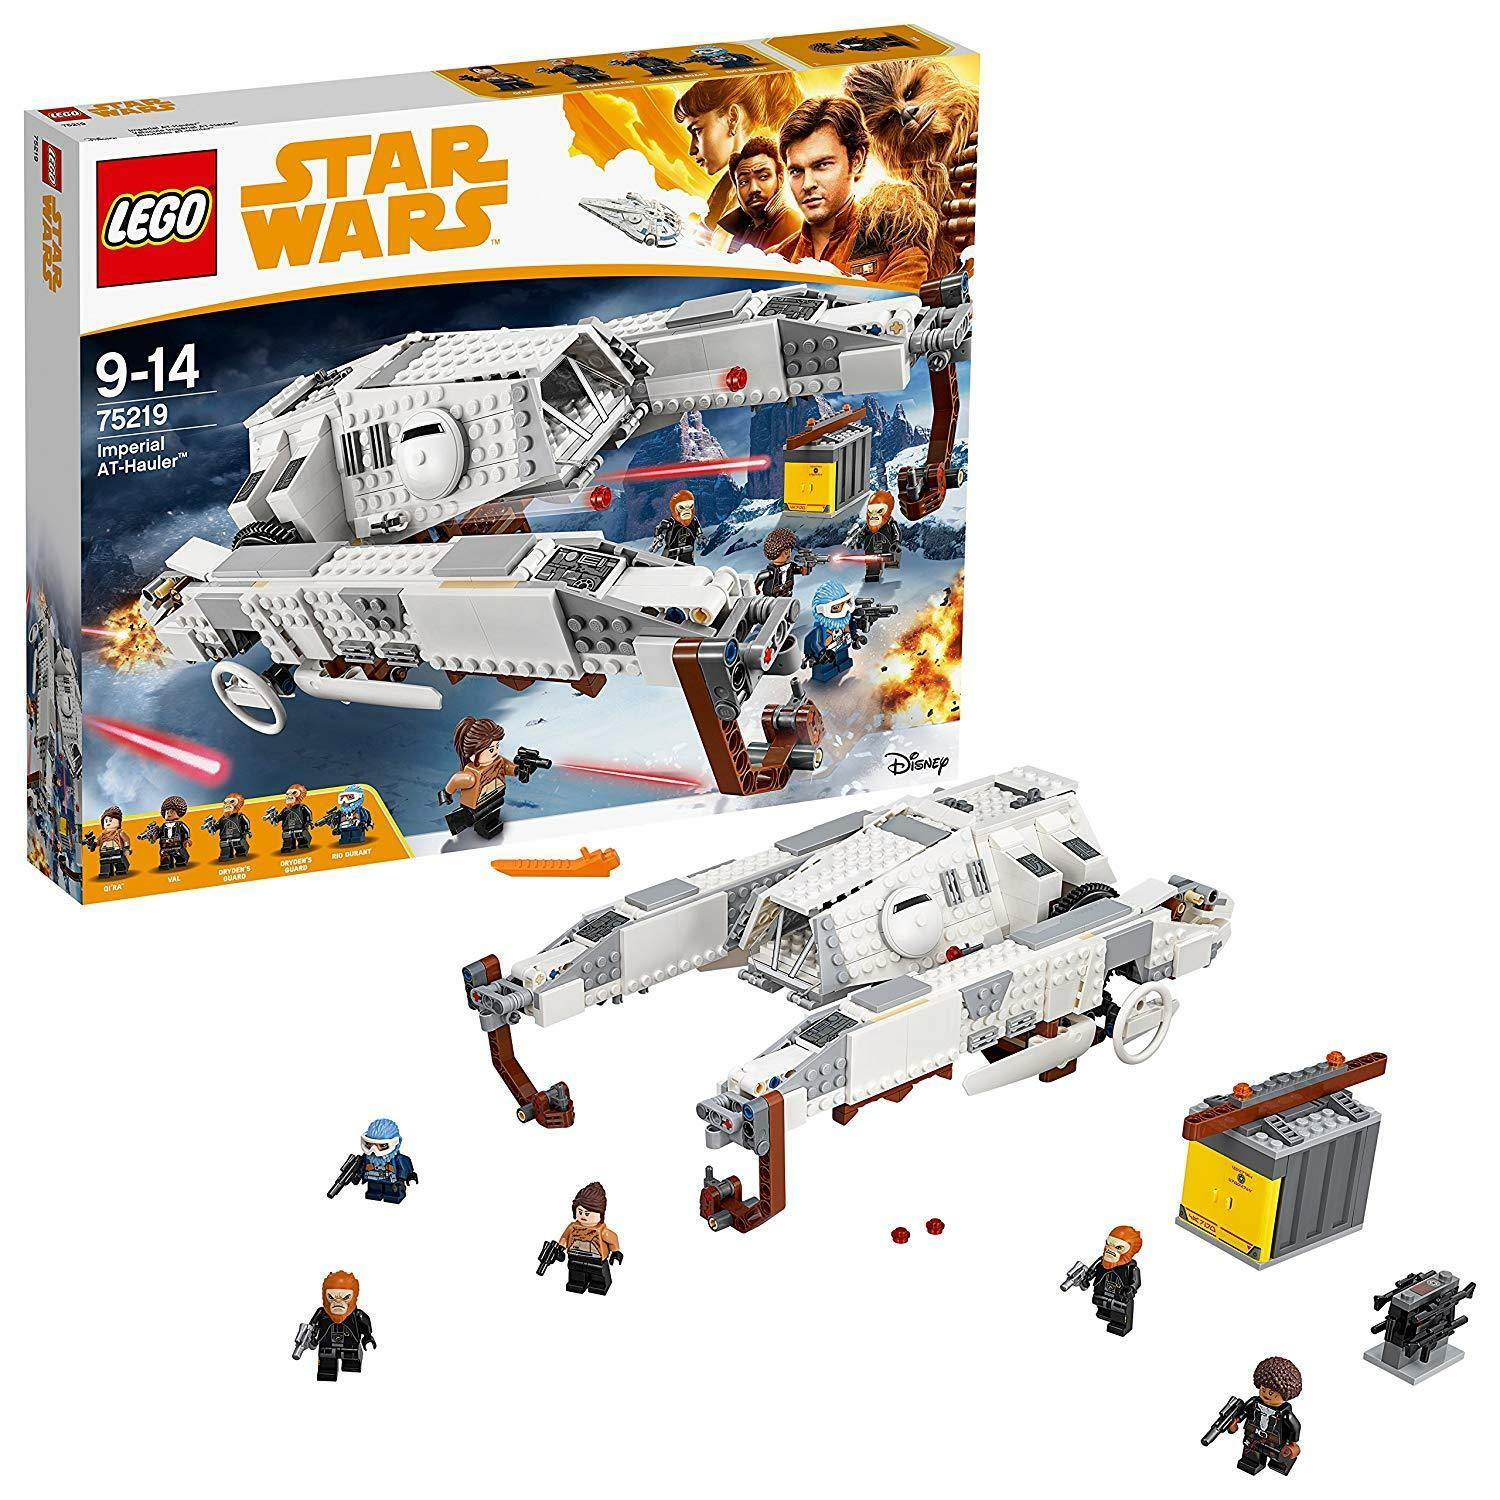 LEGO® Star Wars 75219 Imperial AT-Hauler™ - New and sealed